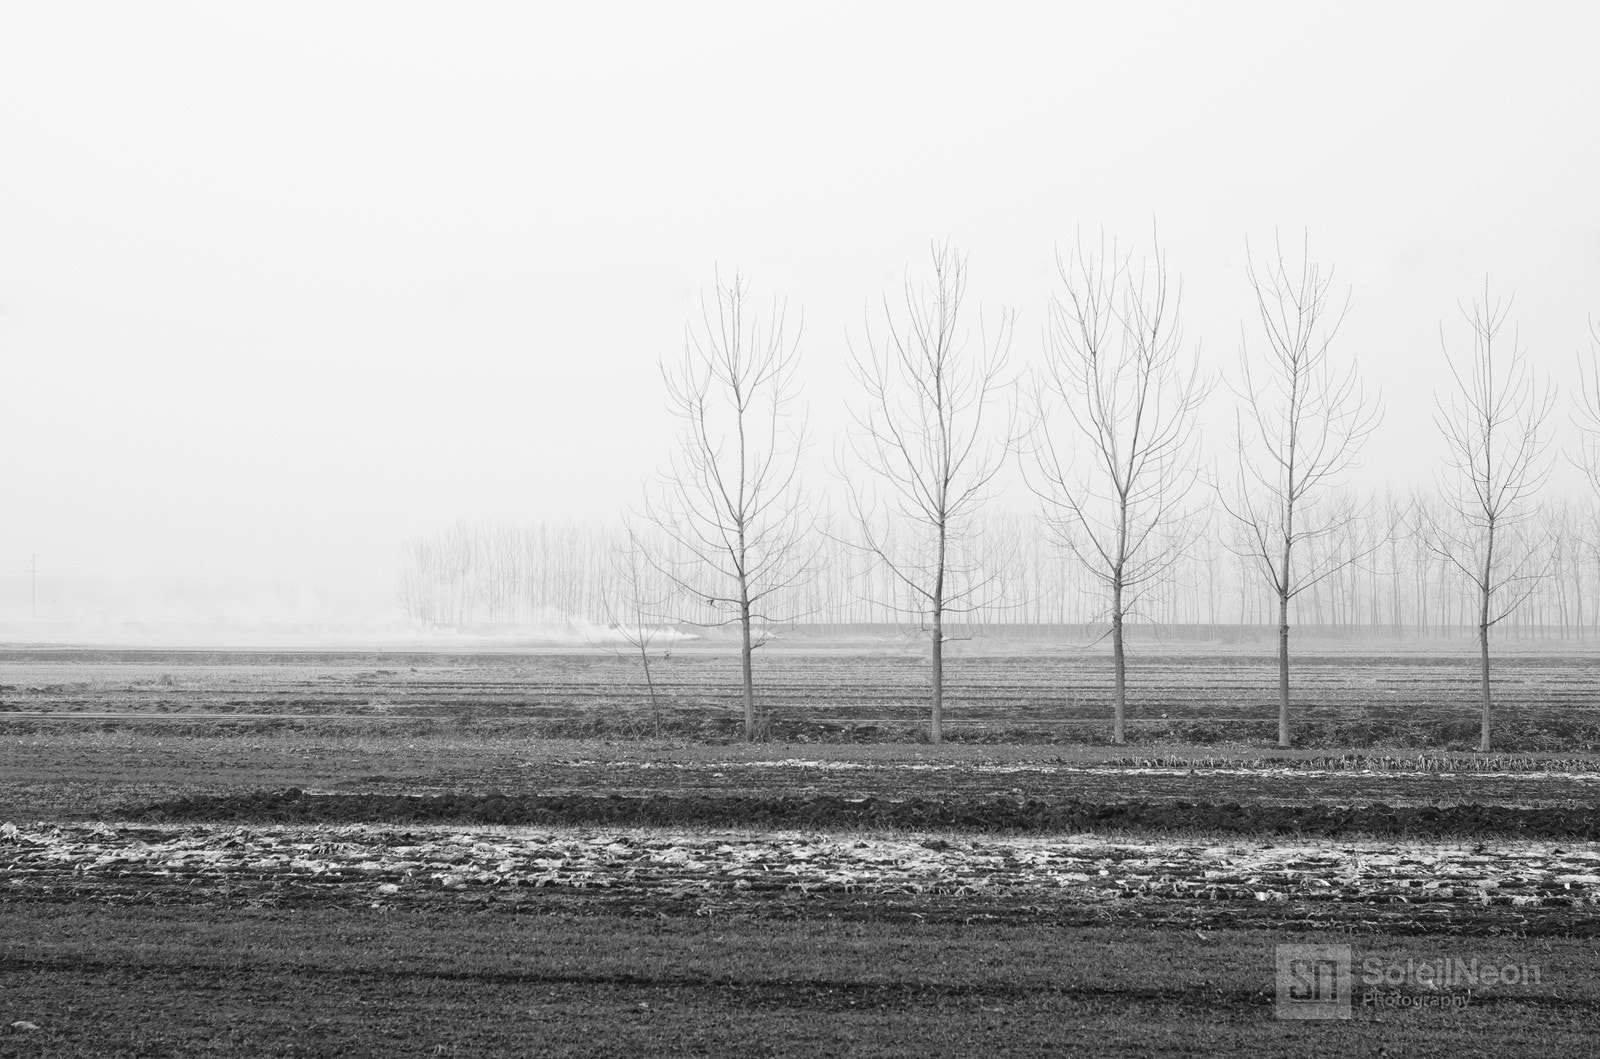 Photograph Trees in row by Soleil Neon on 500px